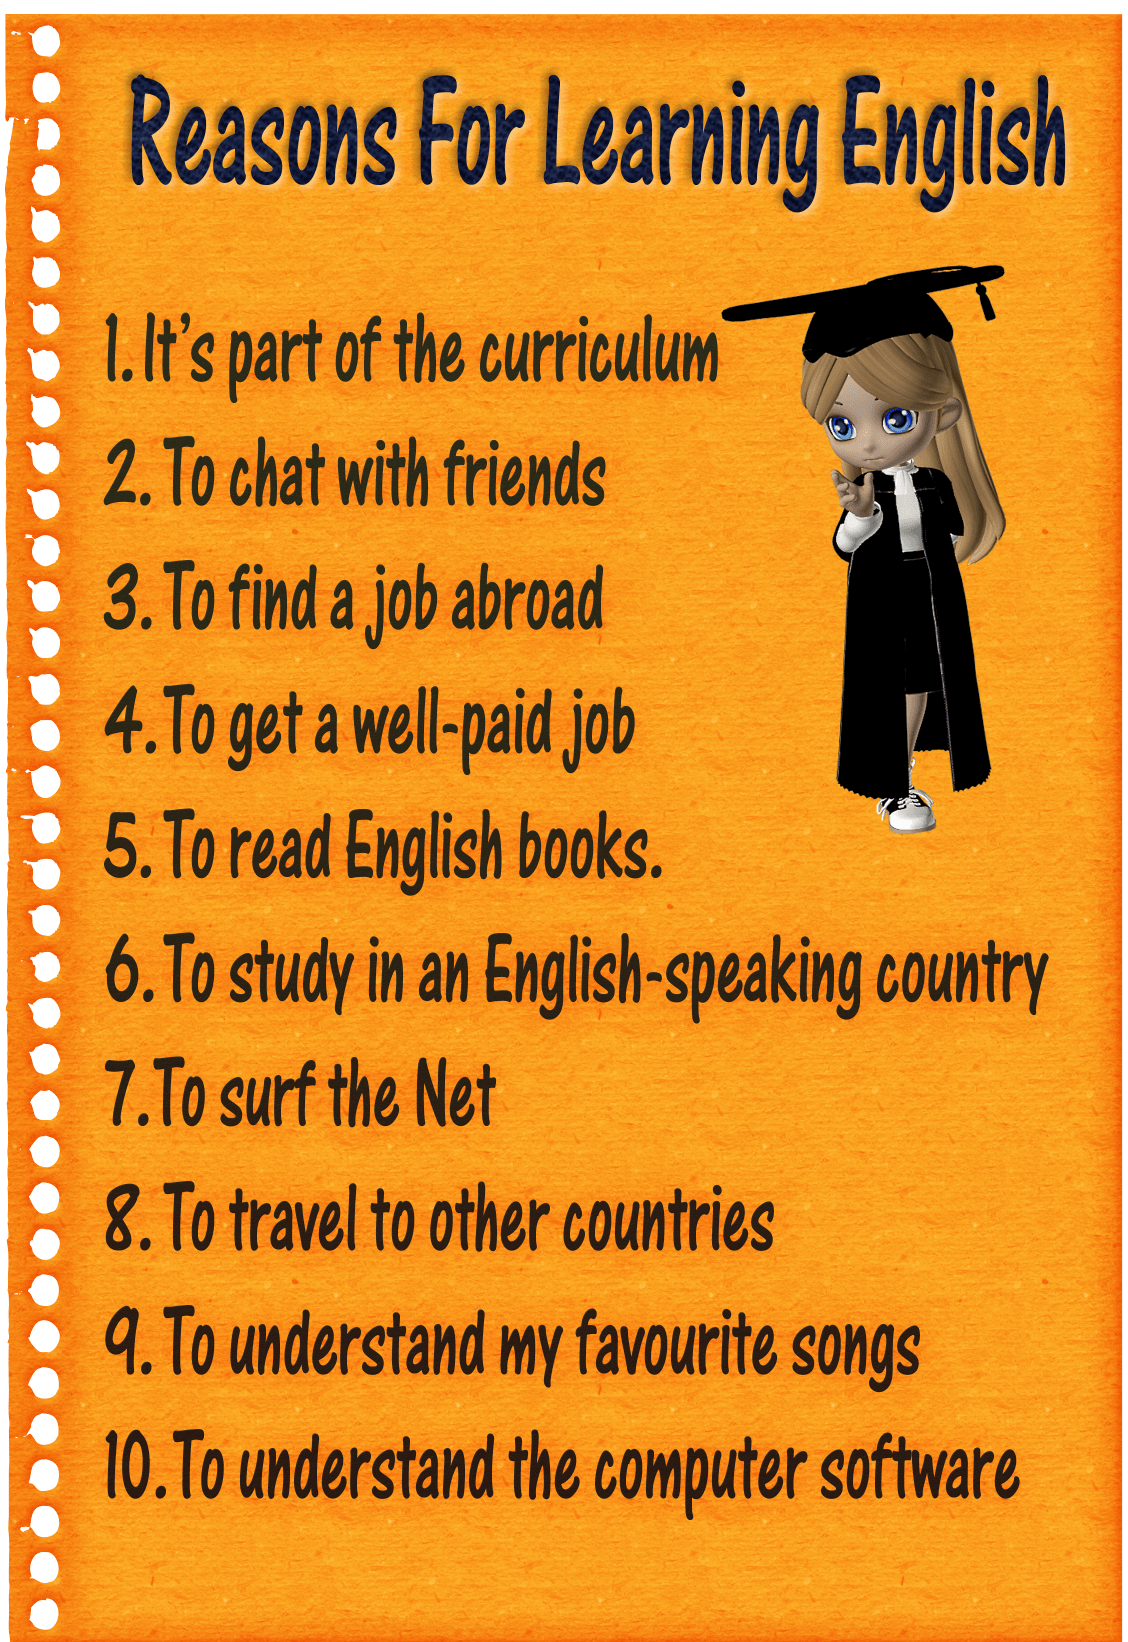 One of the most common questions from English language learners is ...